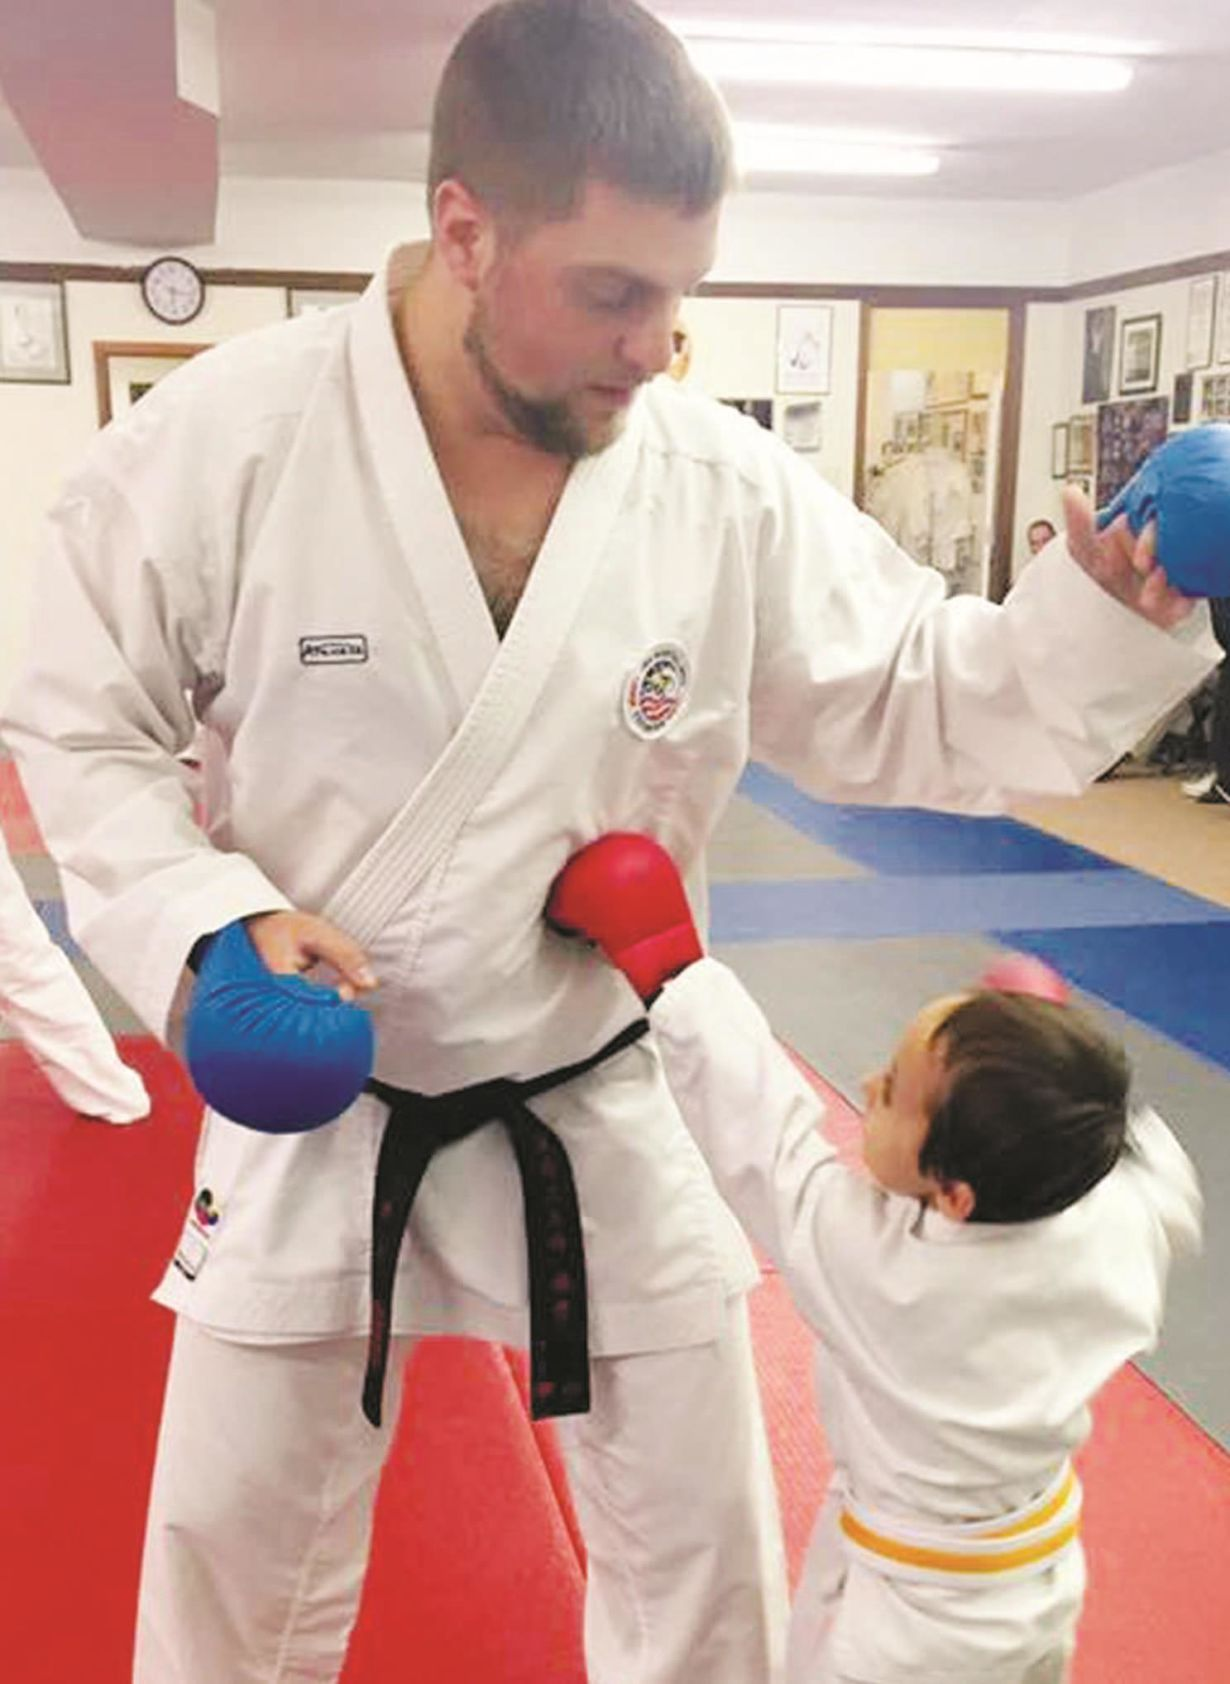 Karate instructor sex abuse ohio